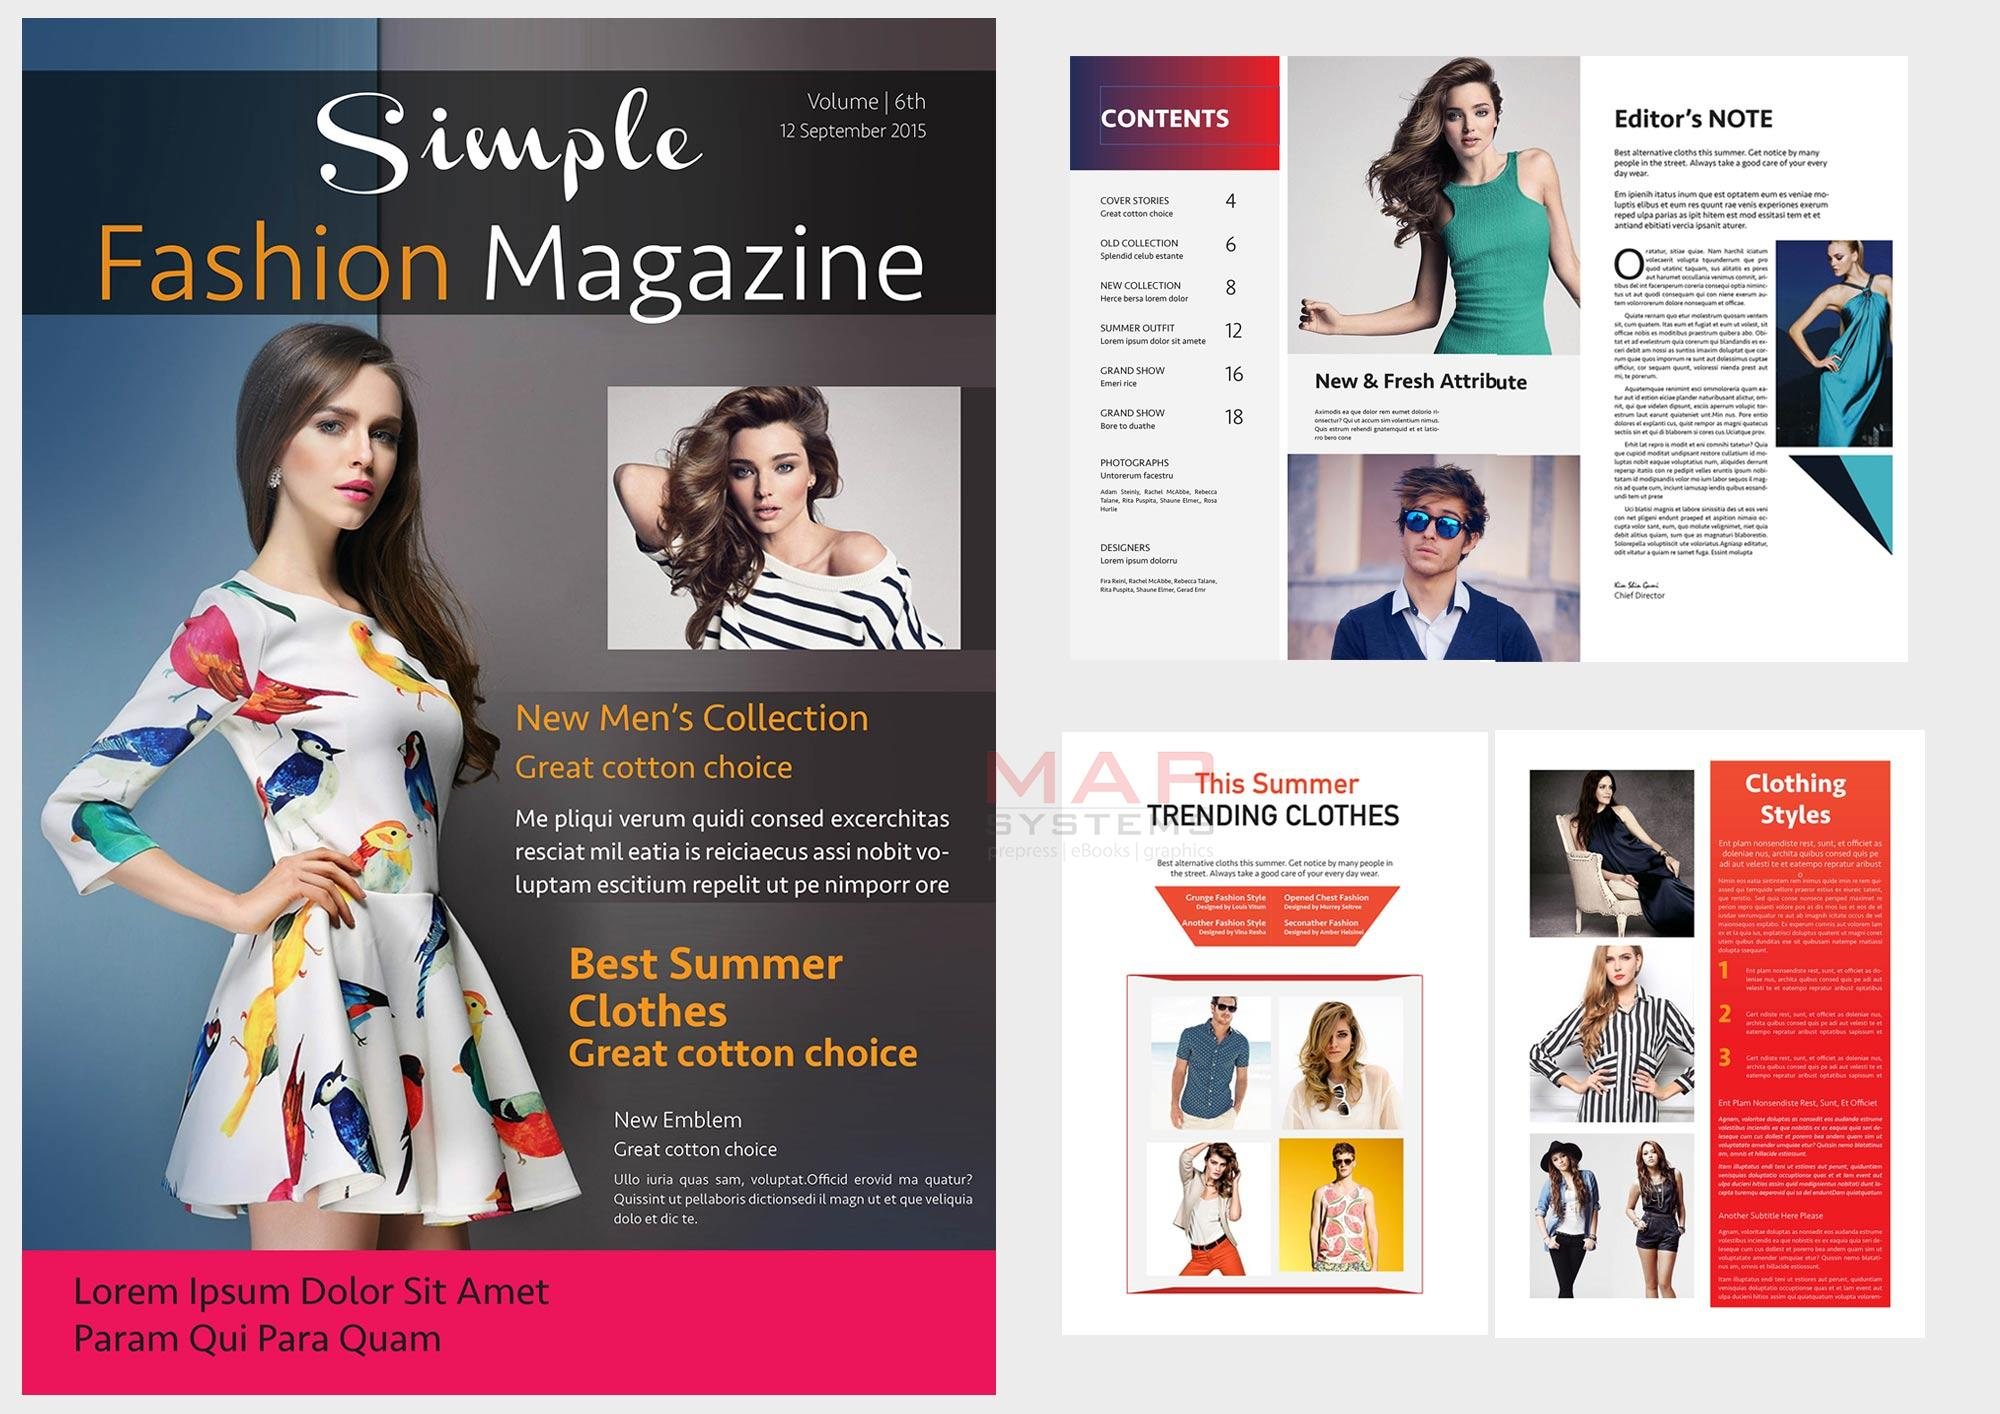 Fashion magazine layout design artconnect for Designs magazine